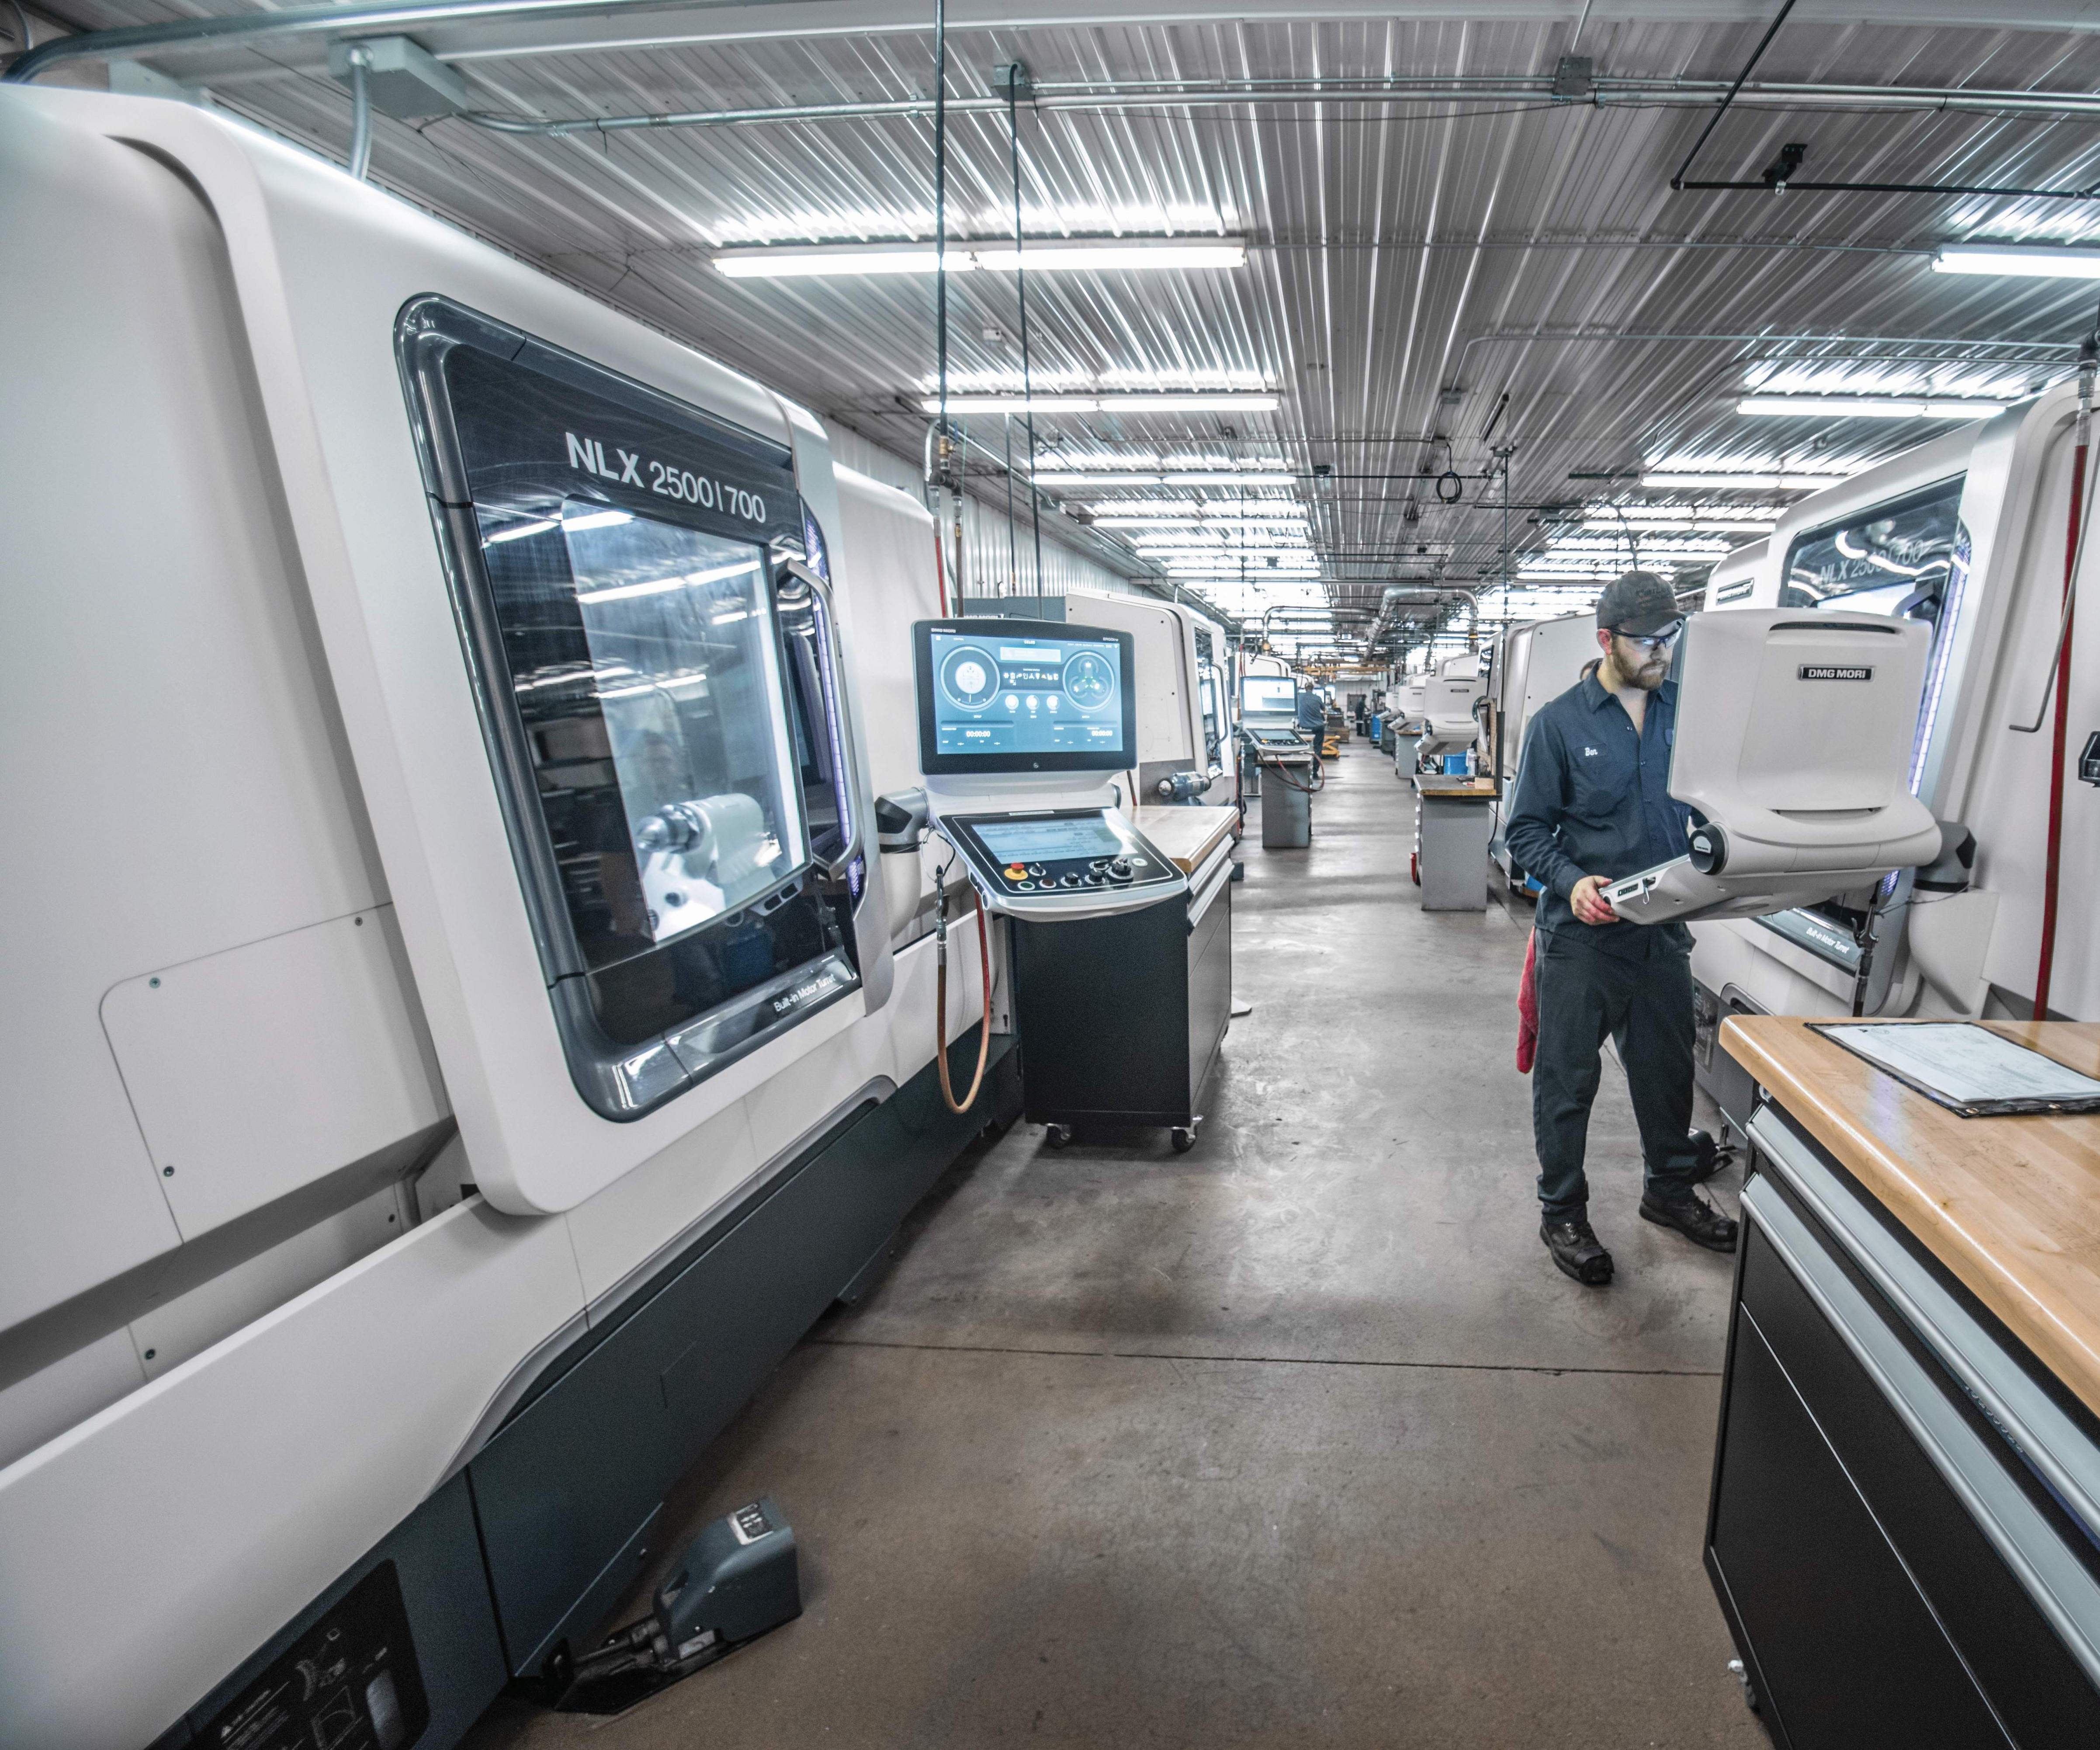 Why Tie Payroll Hours to Machine Tool Hours? : Modern